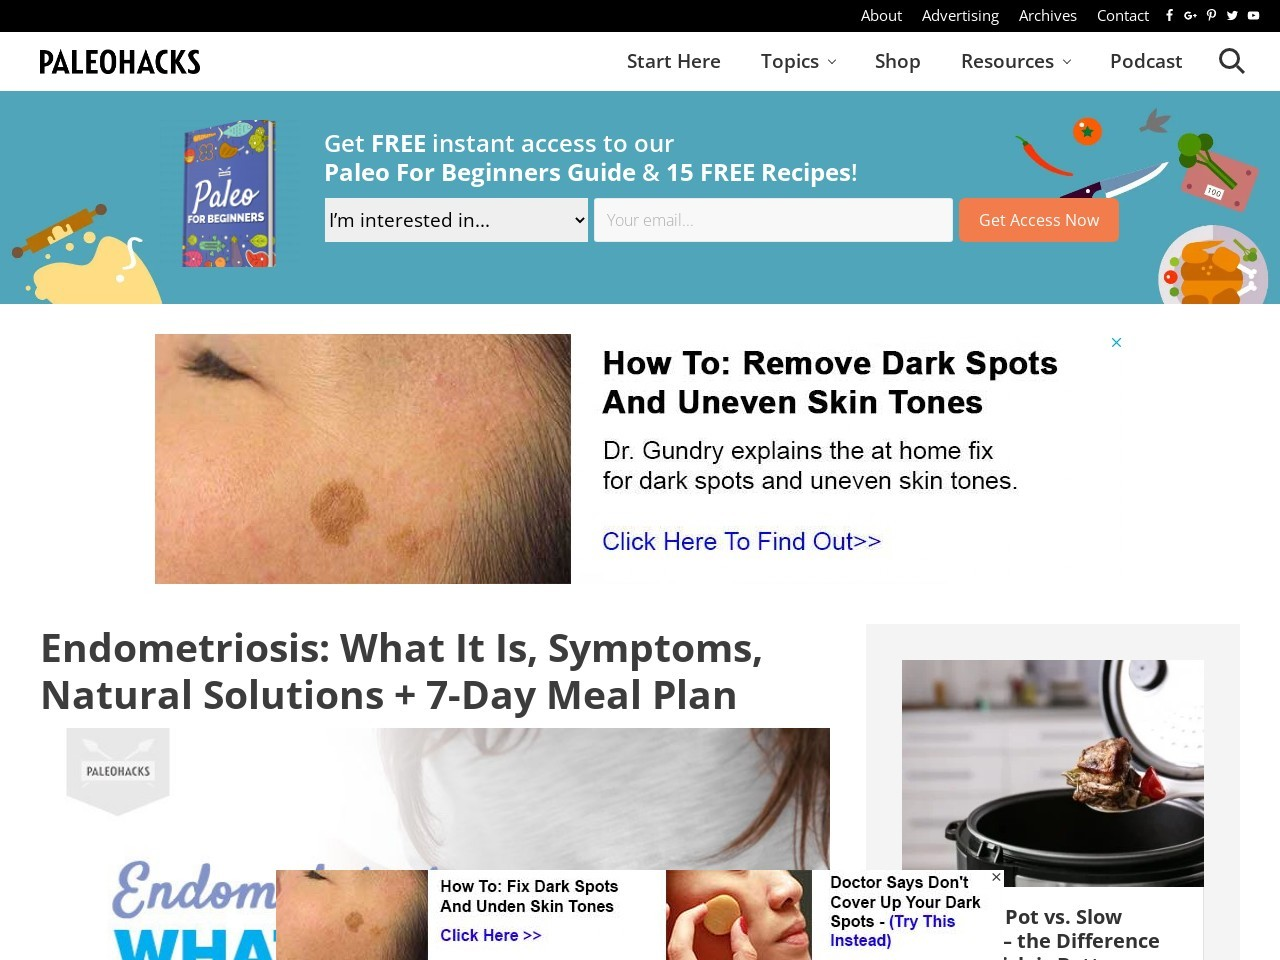 Endometriosis: What It Is, Symptoms, Natural Solutions + 7-Day Meal Plan